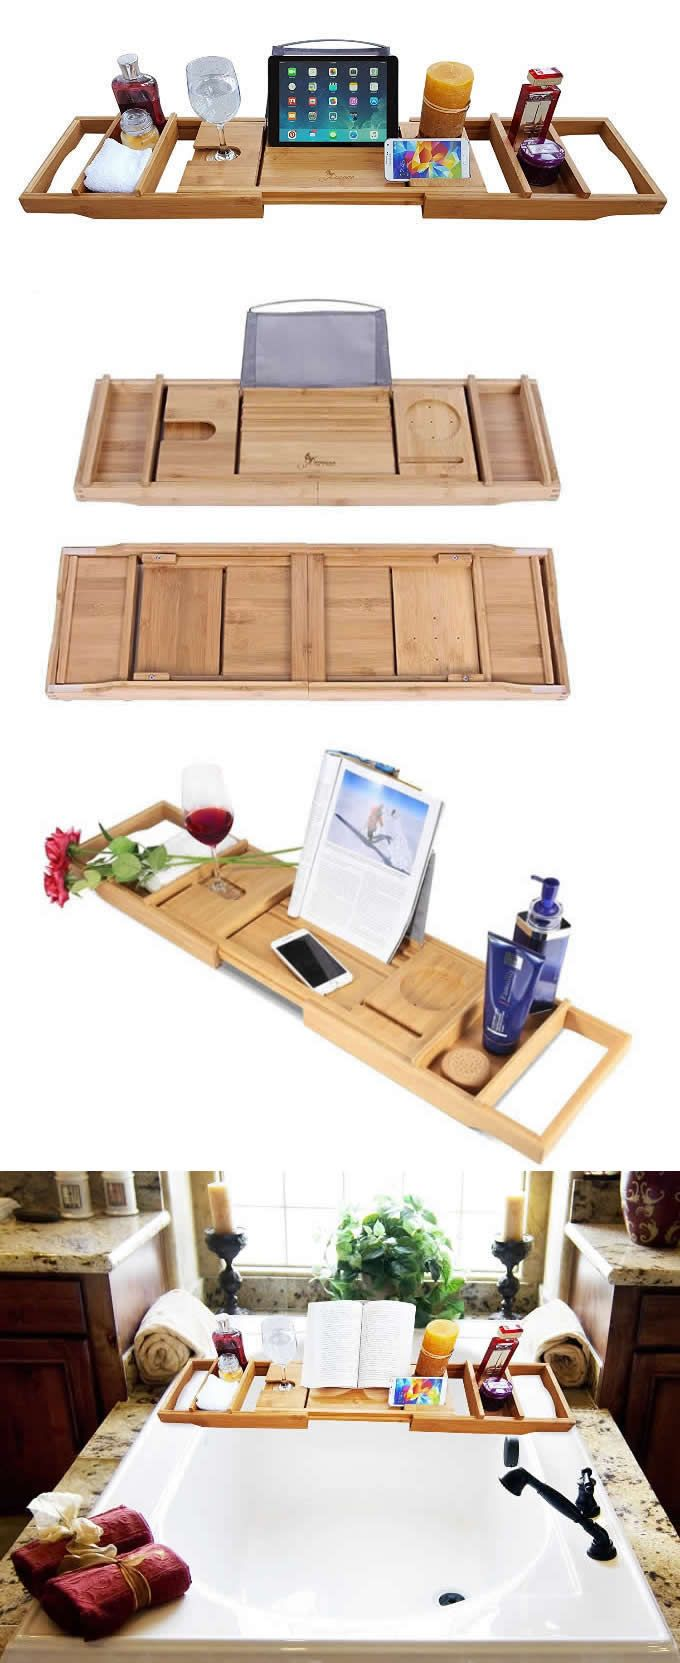 Bamboo Wooden Bathtub Caddy Tray Office Desk Stationery Organizer ...